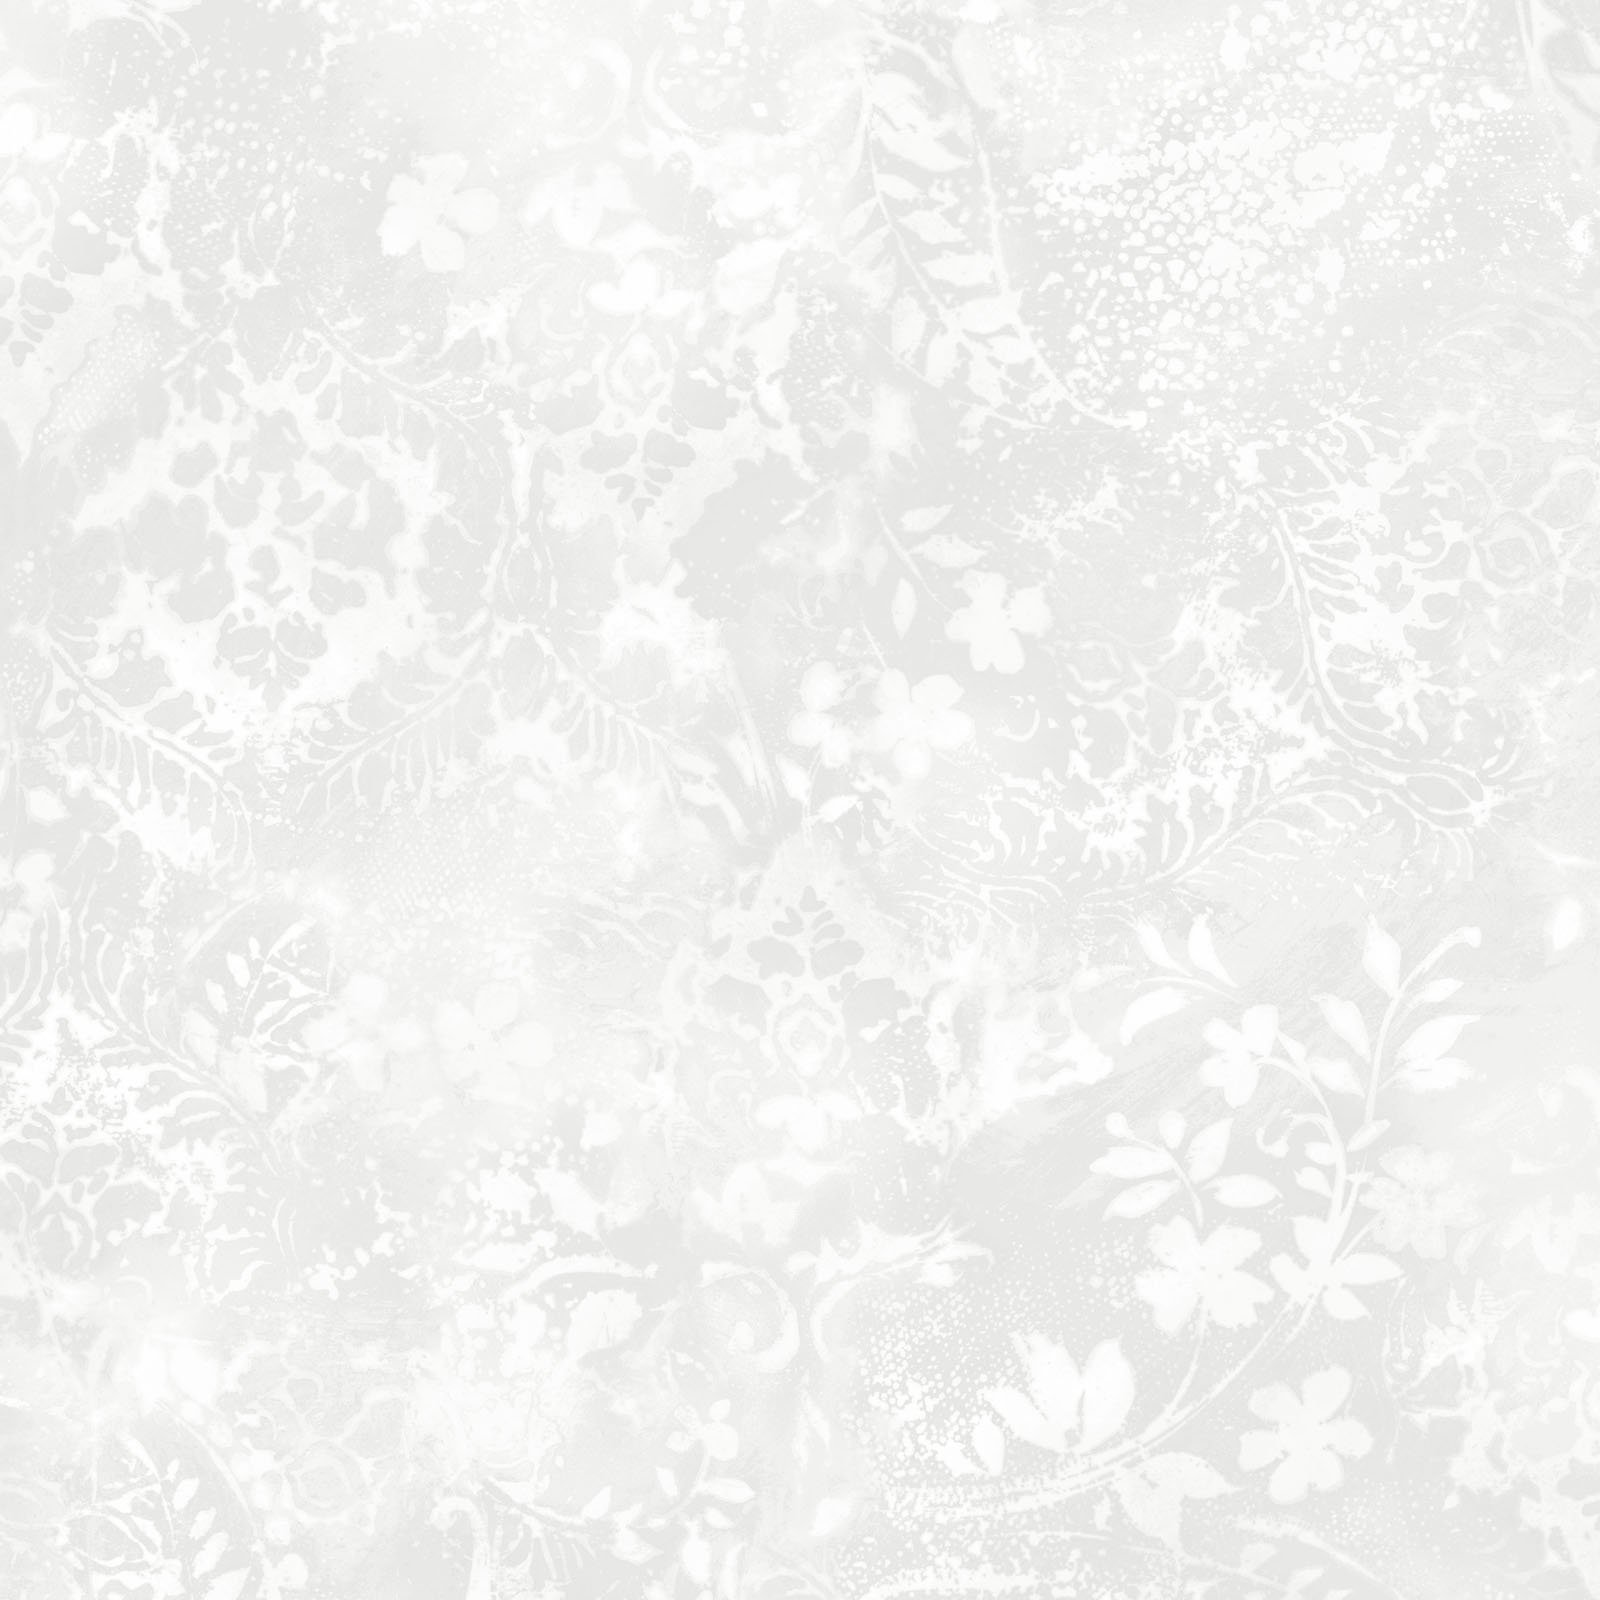 EESC-QBD105 K - BEAUTIFUL BACKING 108 VINTAGE DAMASK BY MAYWOOD LIGHT GREY - ARRIVING IN MAY 2021